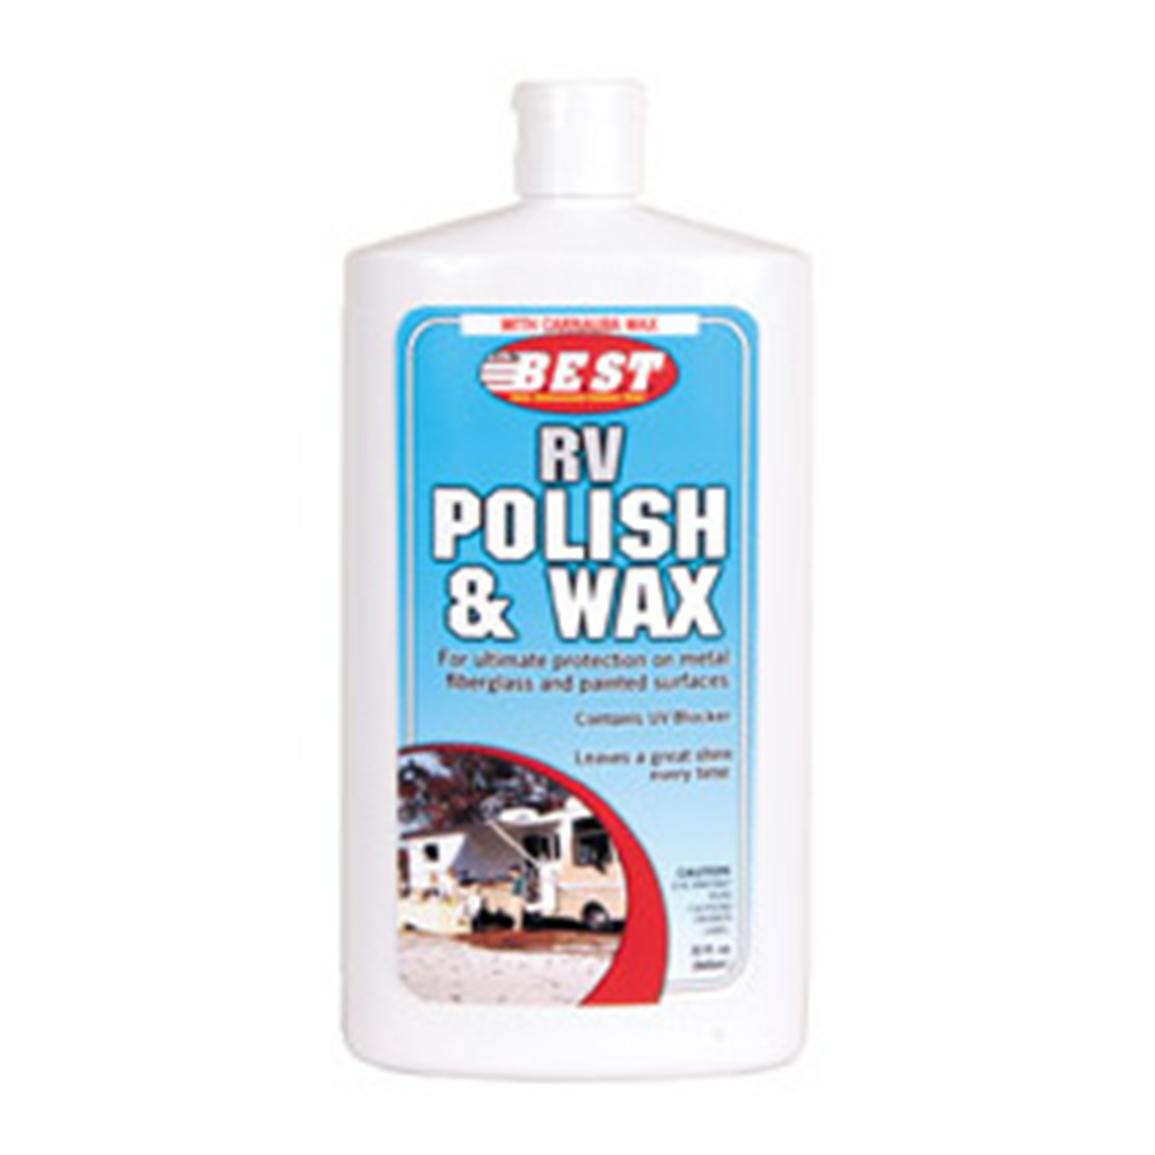 best rv polish and wax 161227 cleaning supplies at. Black Bedroom Furniture Sets. Home Design Ideas